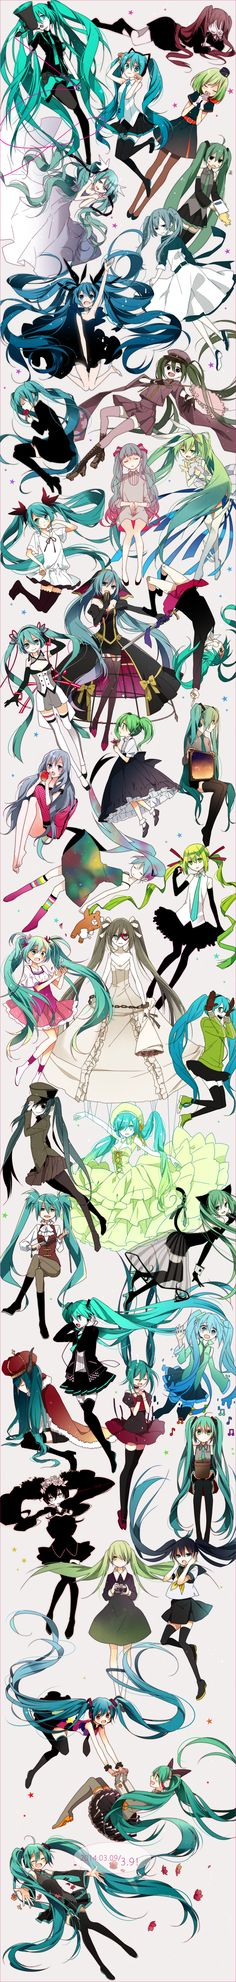 What is that middle Miku with the heart over her eye? I MUST KNOW!!!